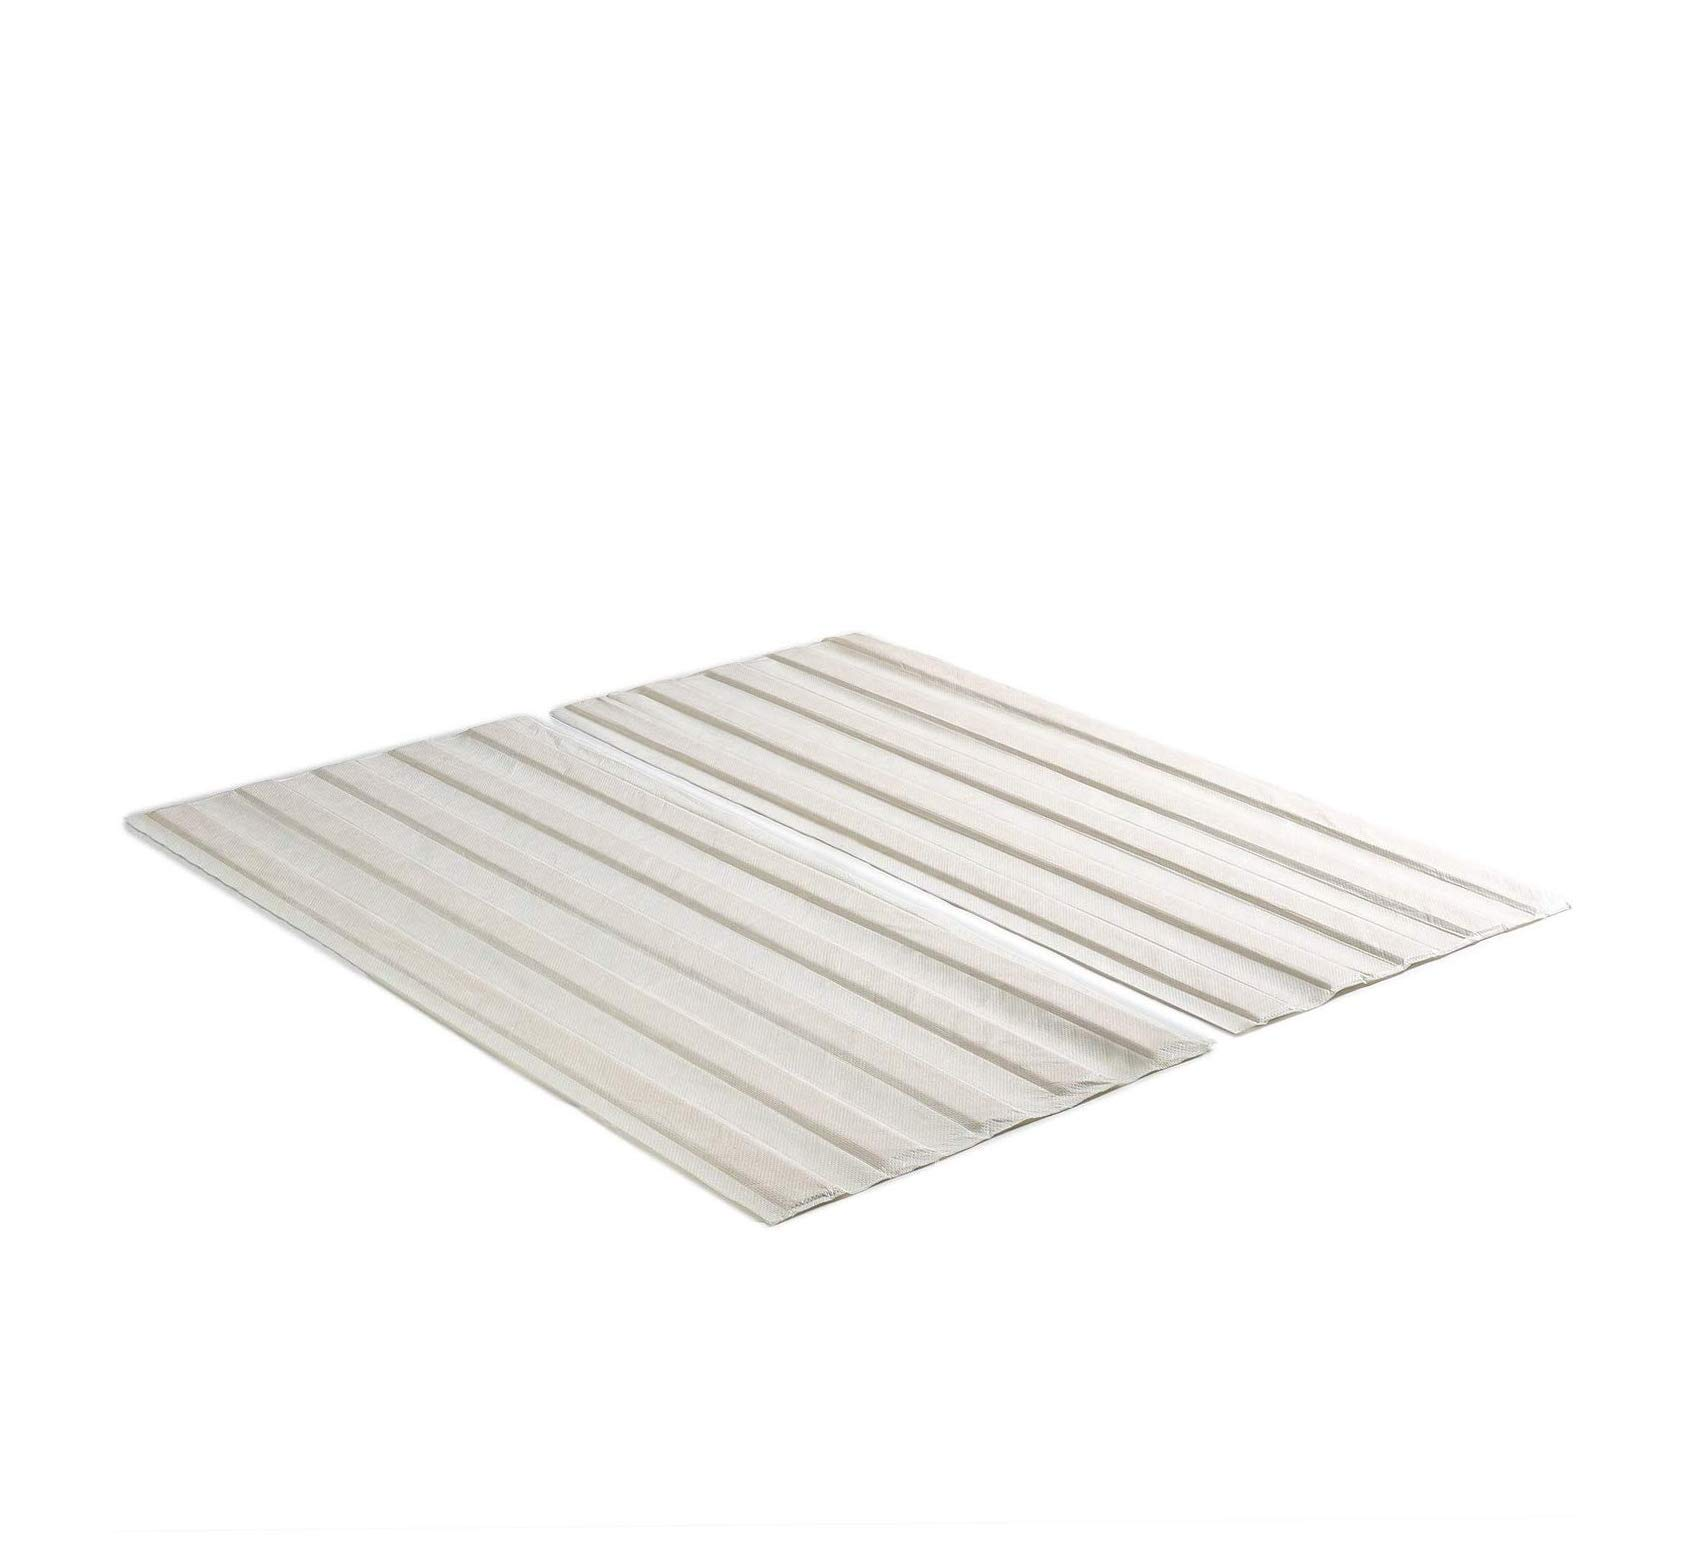 Solid Wood Bed Support Slats/Fabric-Covered/Bunkie Board, King Comfy Living Home Décor Furniture Heavy Duty